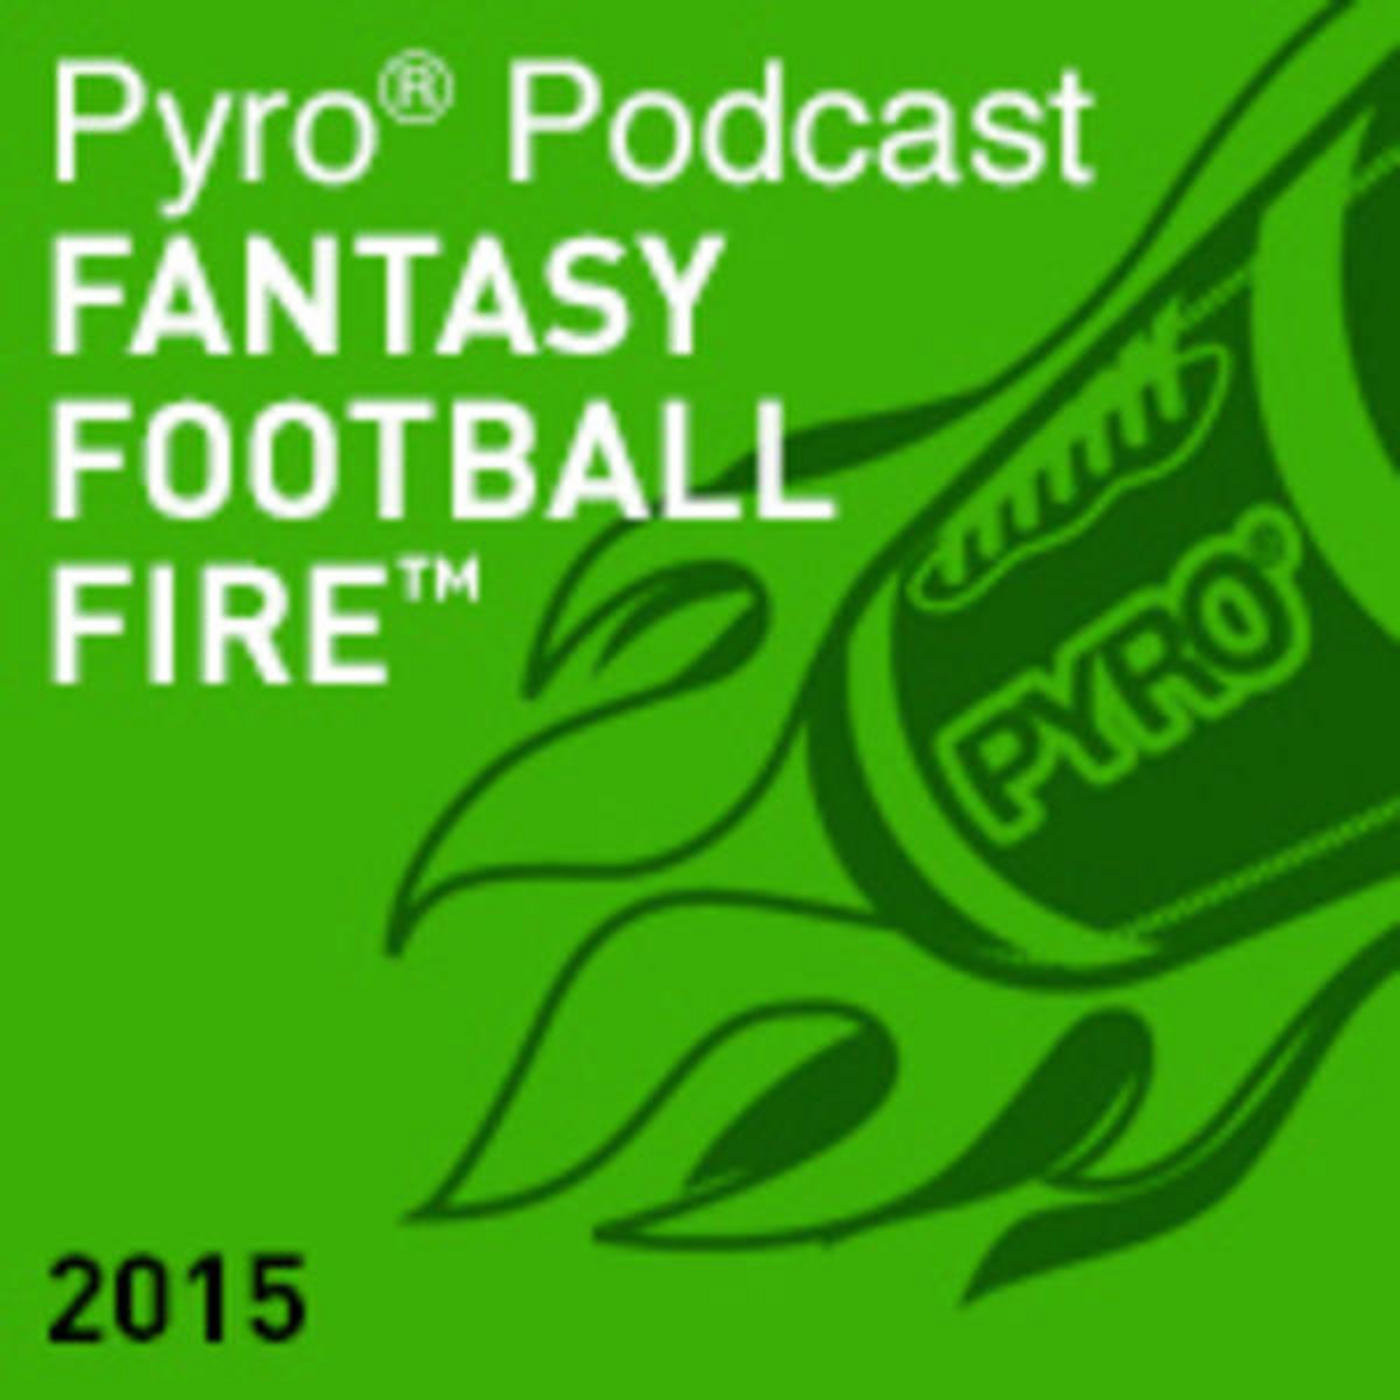 Breakout Players for 2012 - Pyro® Podcast - Fantasy Football Fire Offseason Episode 13